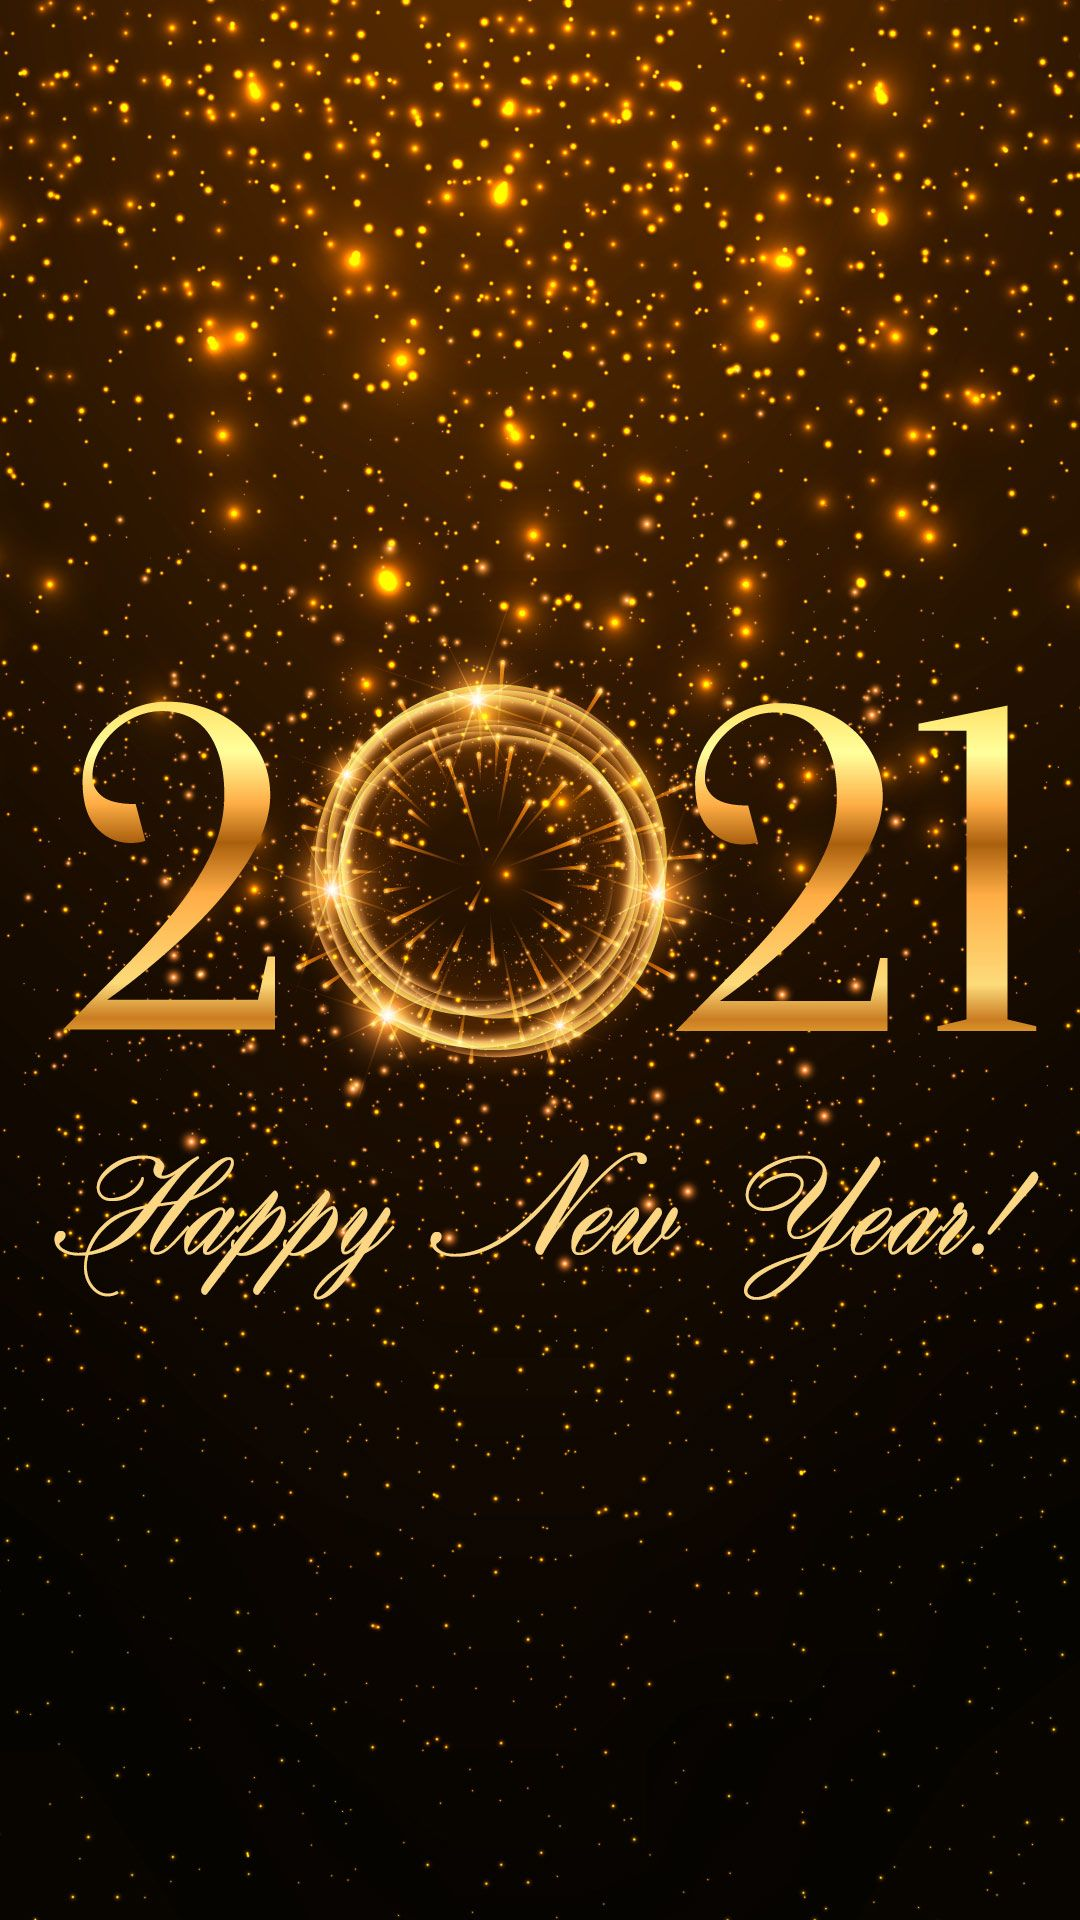 Happy New Year 2021 in 2020 Happy new year fireworks